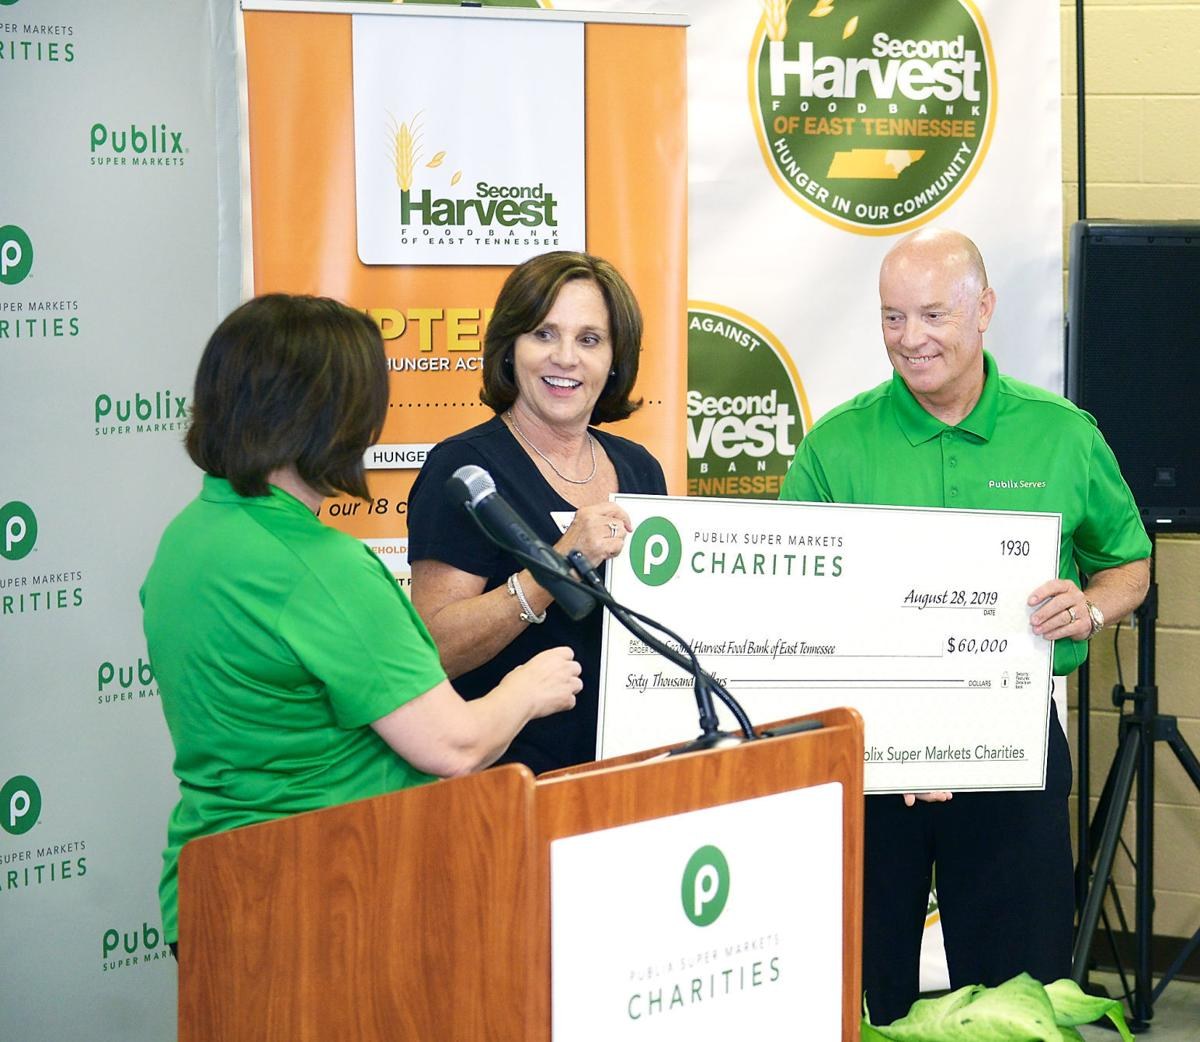 Second Harvest of East Tennessee receives $60,000 from